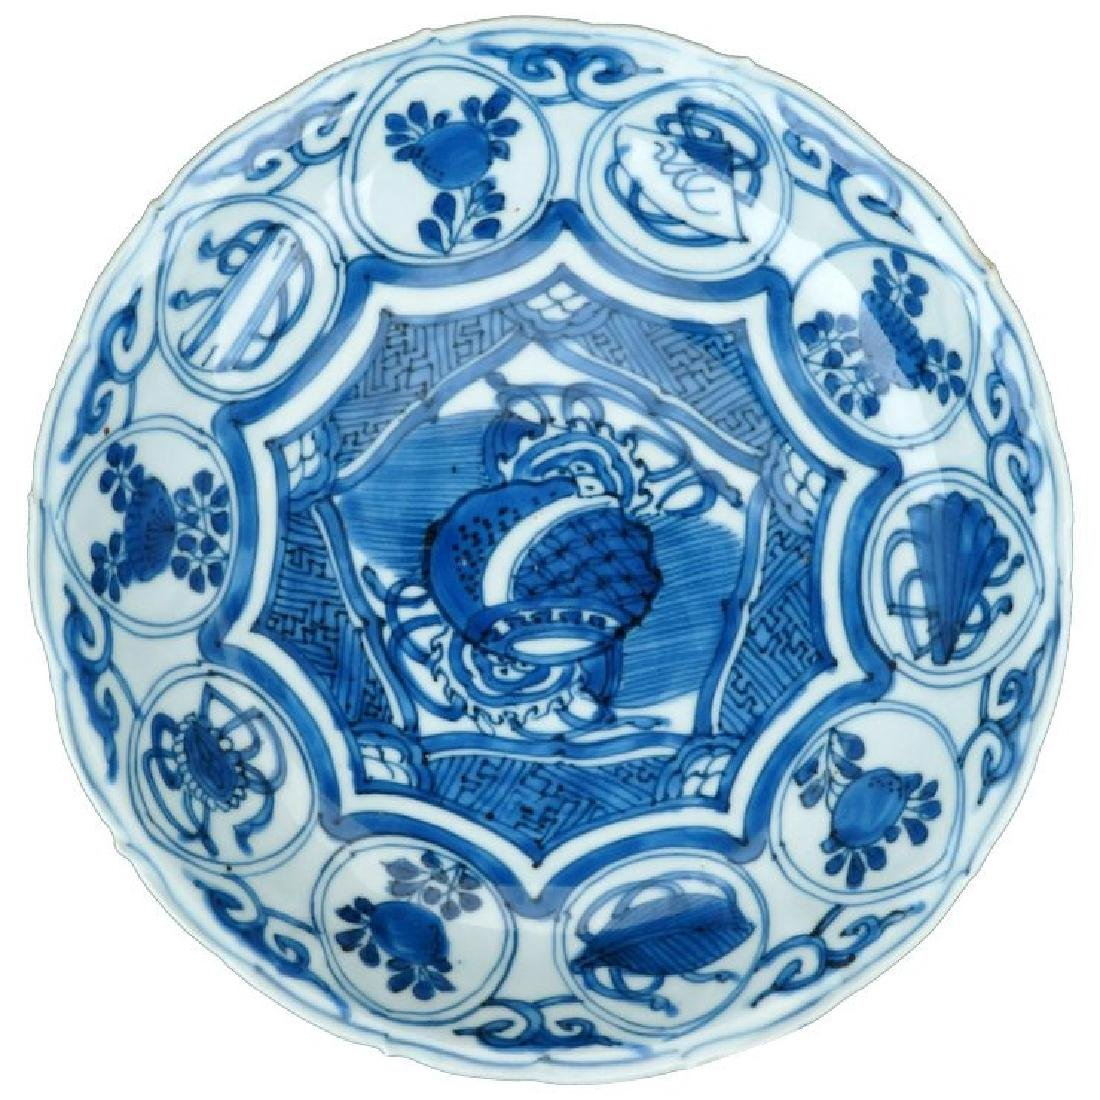 Wanli Chinese porcelain Kraak ware blue and white